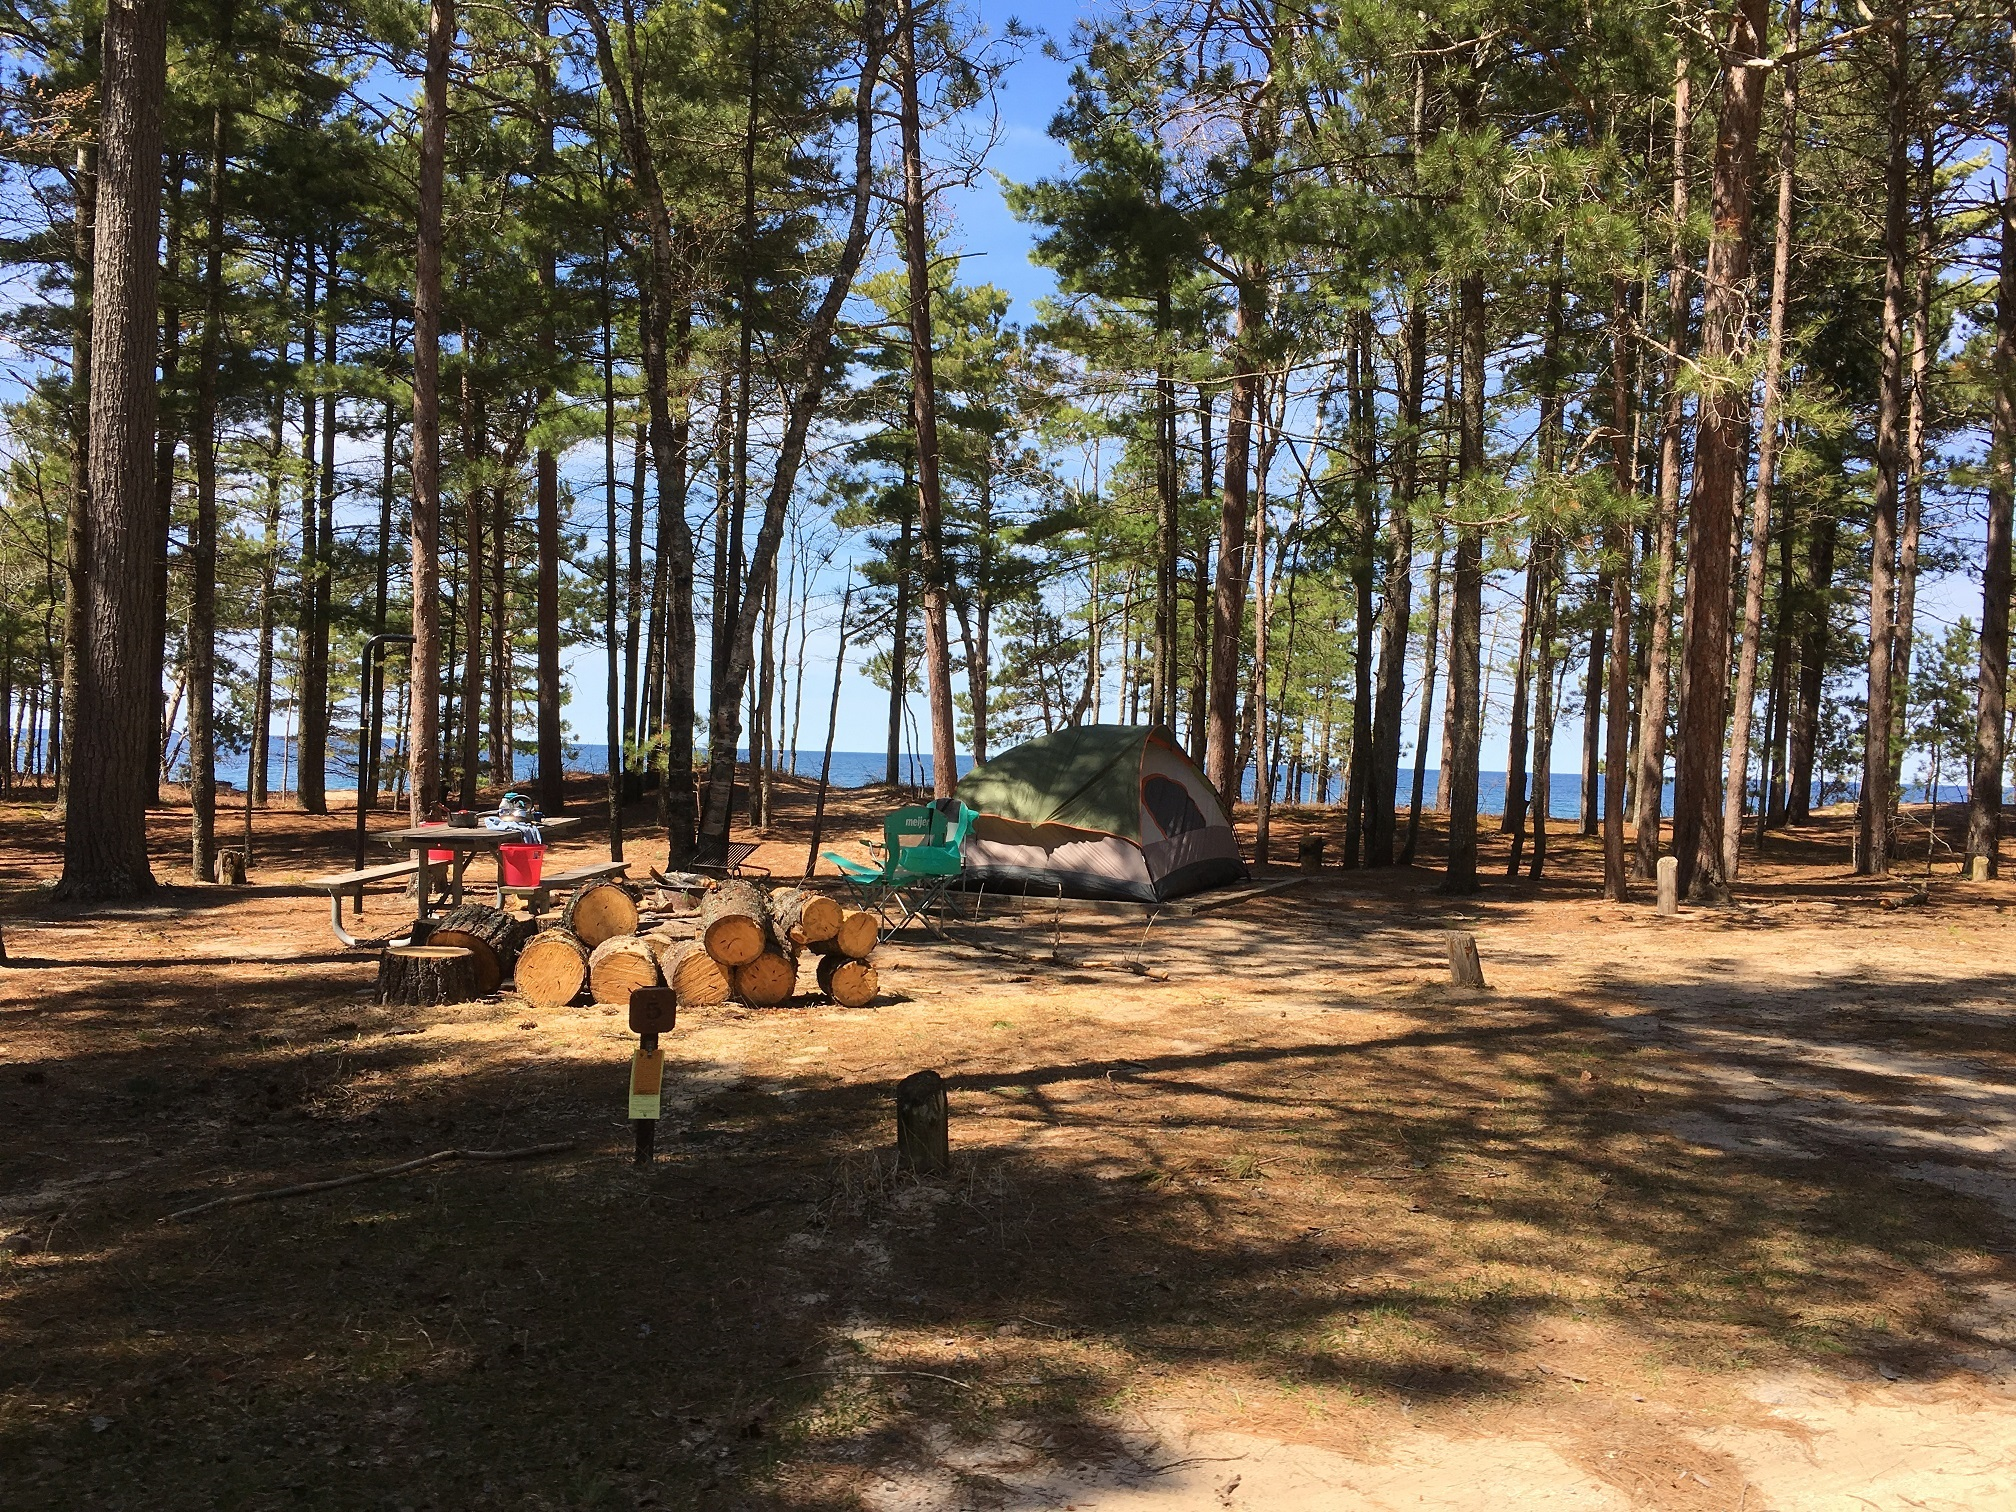 Campsite at Twelvemile Beach Campground surrounding by pine trees with Lake Superior in the background. Includes tent, chair, picnic table, and wood pile.